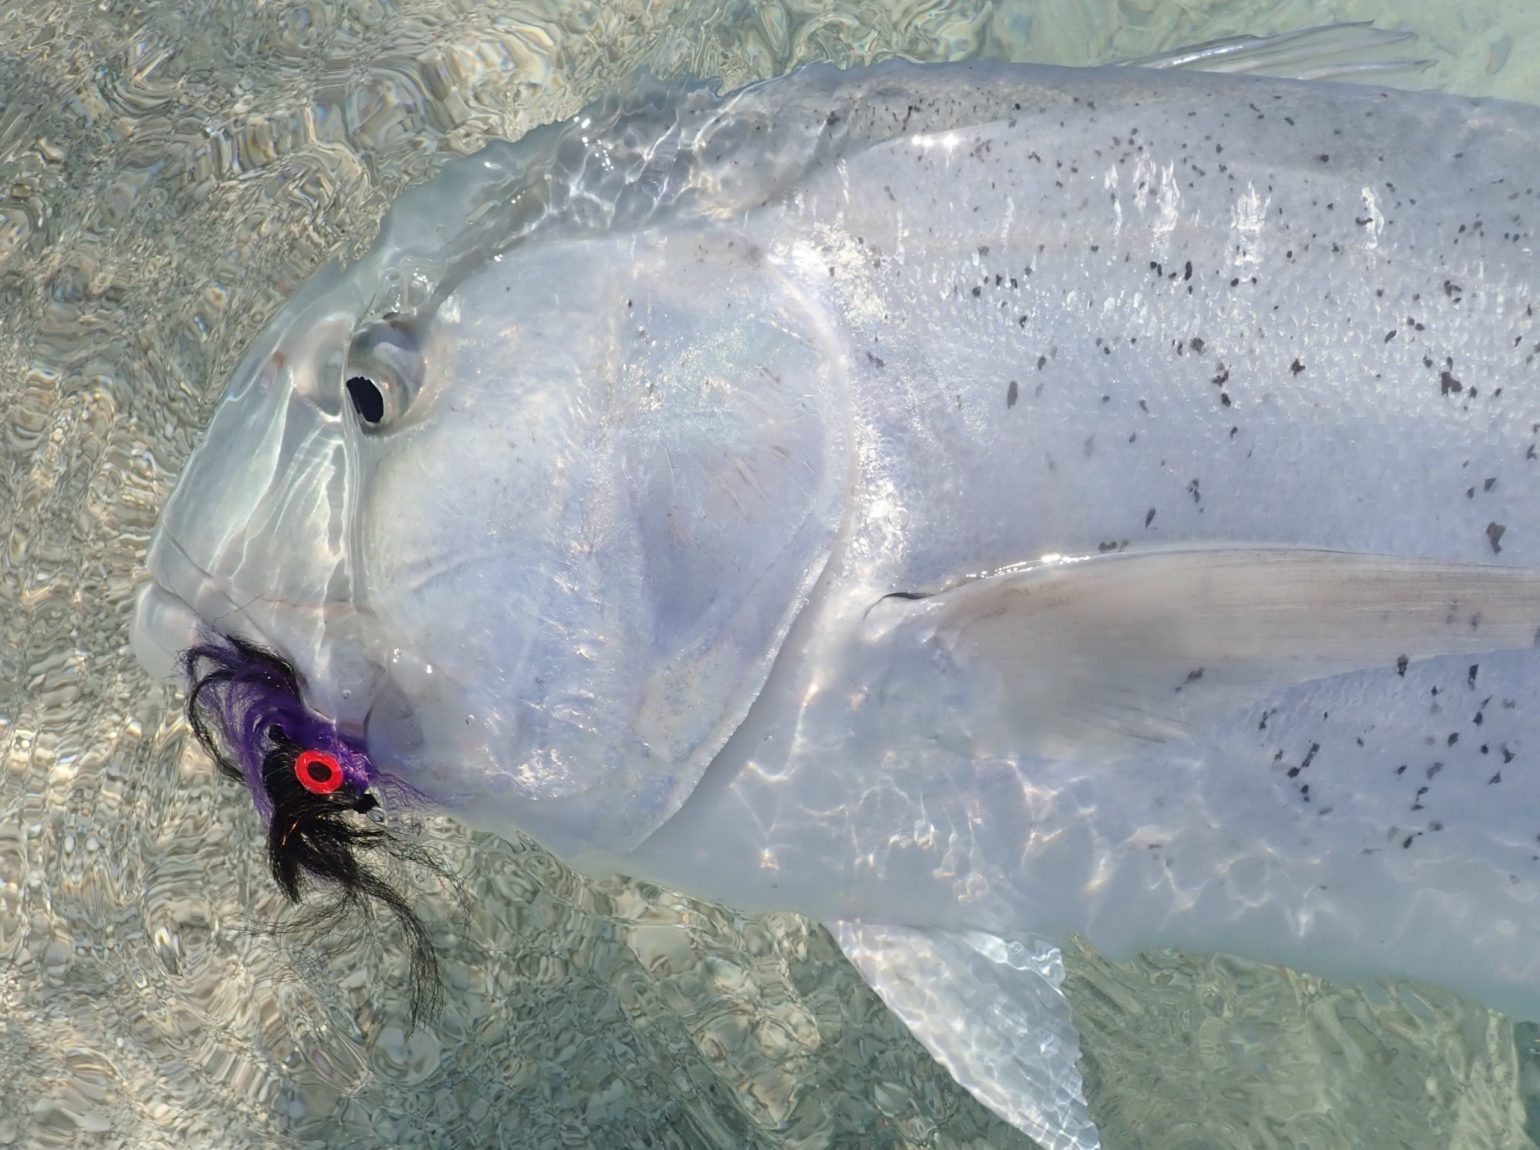 malediivit maldiverna maldives gt gianttrevally bluefintrevally yellowspottedtrevally, perhokalastus flyfishing flugfiske fluefiske perhokalastusmatka kalastus kalastusmatka kalastusmatkat fishmaster globalfishing